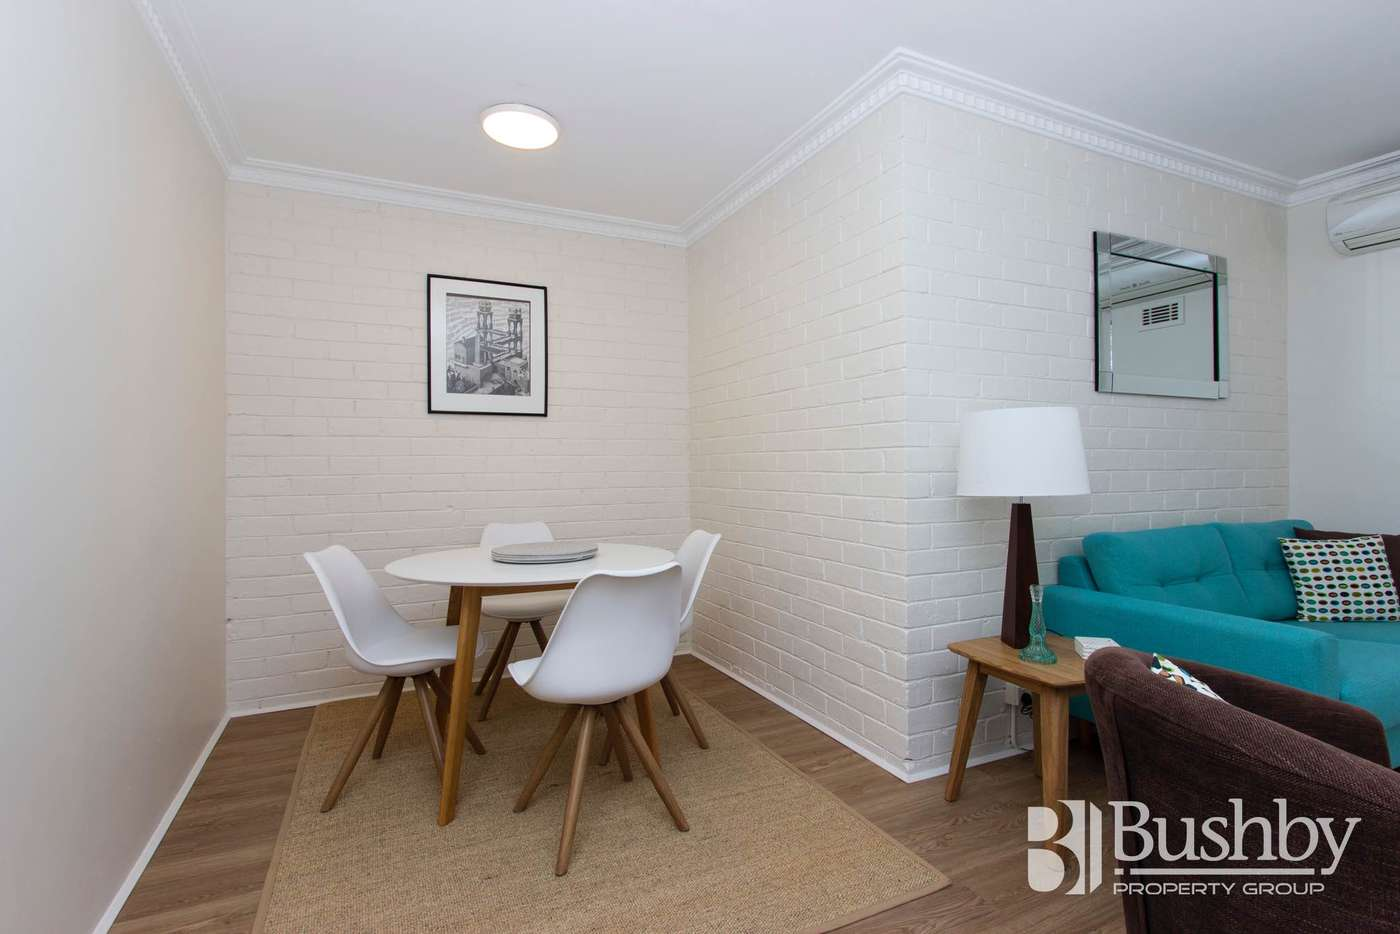 Sixth view of Homely apartment listing, 5/3 Kenyon Street, Newstead TAS 7250